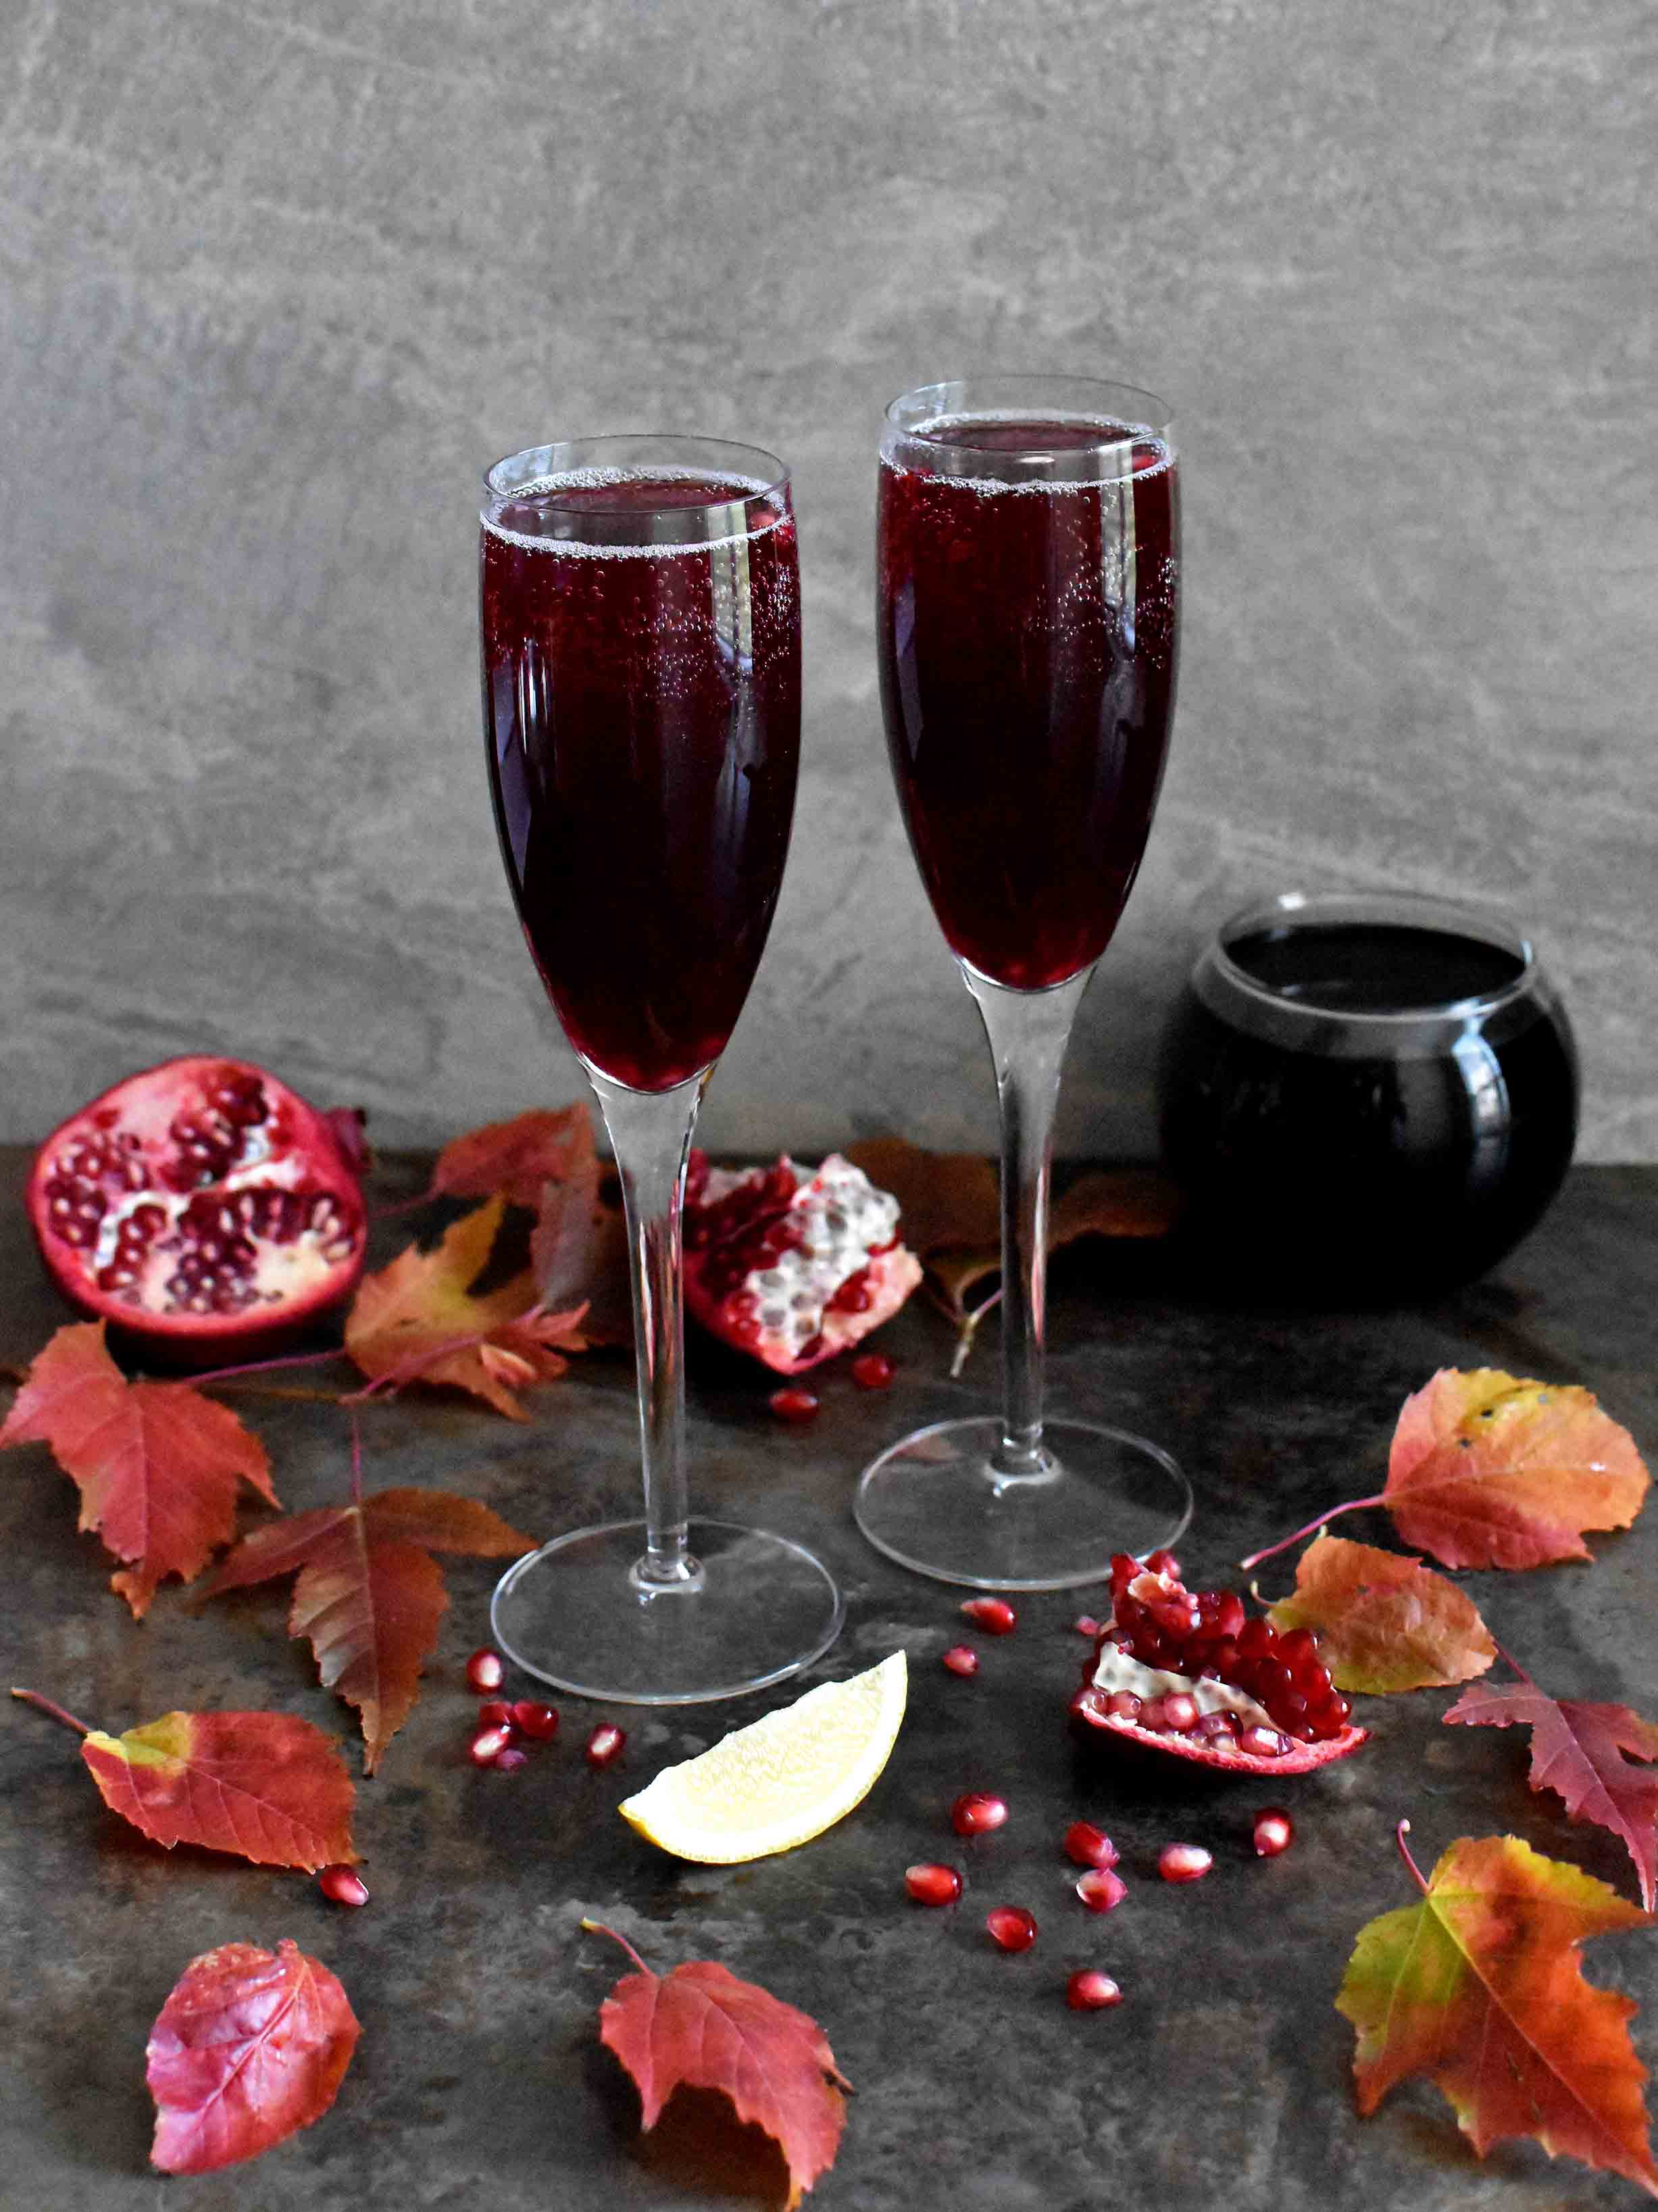 Pomegranate Champagne Cocktail - Pepper Delight #pepperdelightblog #recipe #cocktail #thanksgiving #pomegranate #champagne #drinks #newyear #christmas #holidaydrinks #5minuterecipes #party #festivals